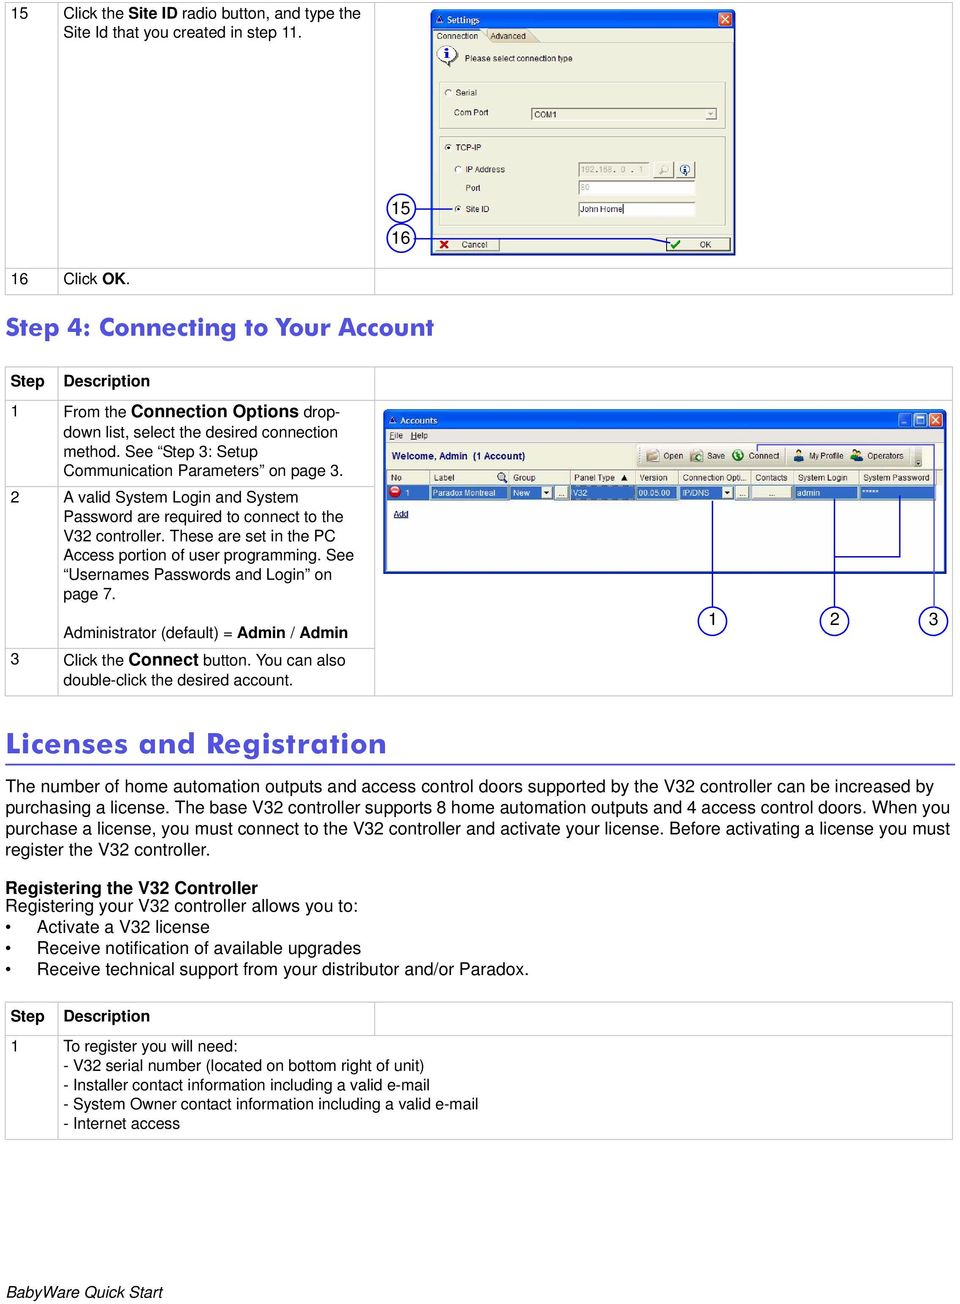 2 A valid System Login and System Password are required to connect to the V32 controller. These are set in the PC Access portion of user programming. See Usernames Passwords and Login on page 7.